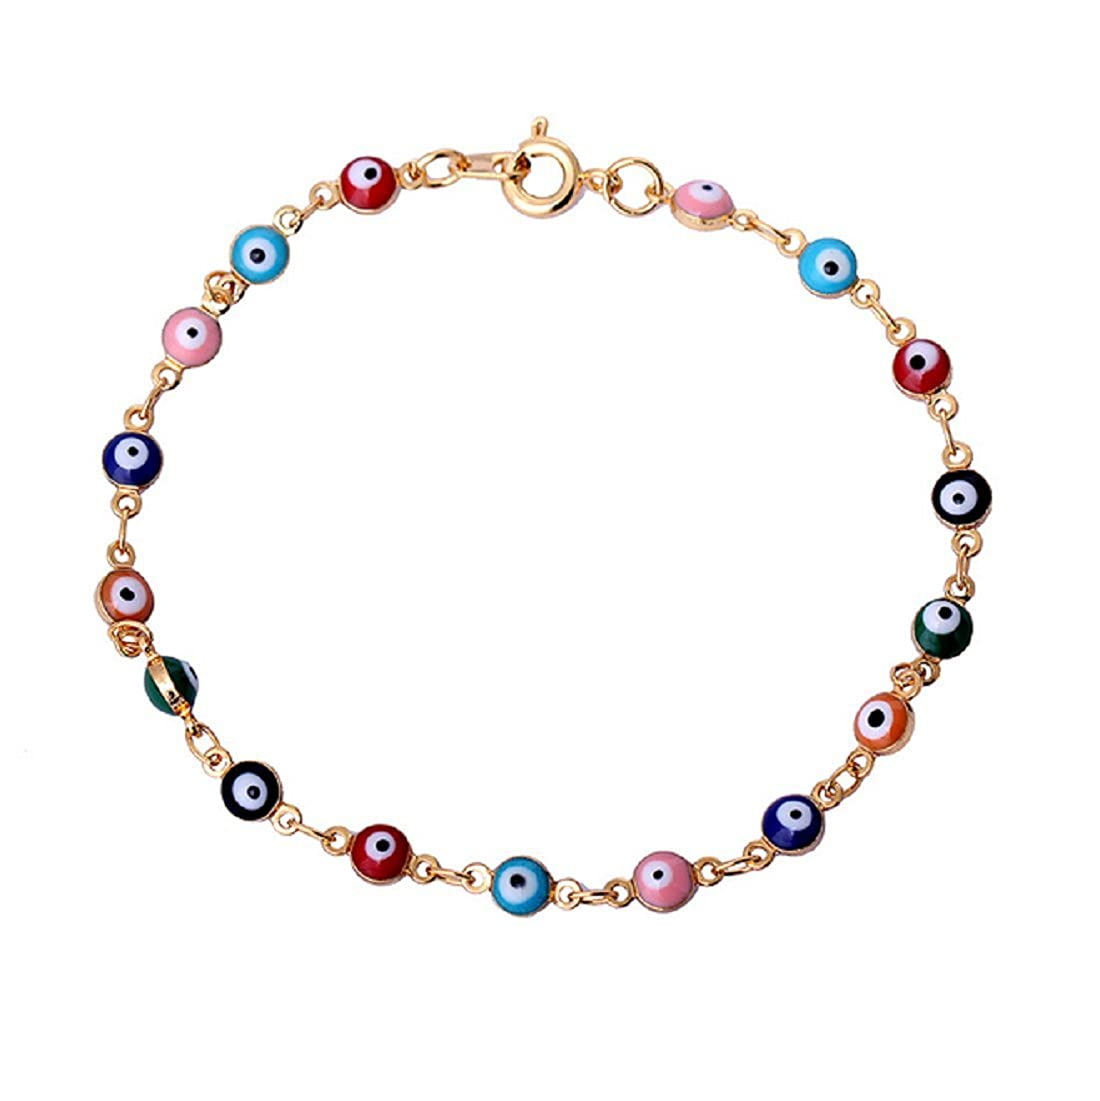 Blowin Womens Present Rose Gold Tone Overlay with Colorful Mini Evil Eye Style Bracelet 7.87 Inch BW4PR001444